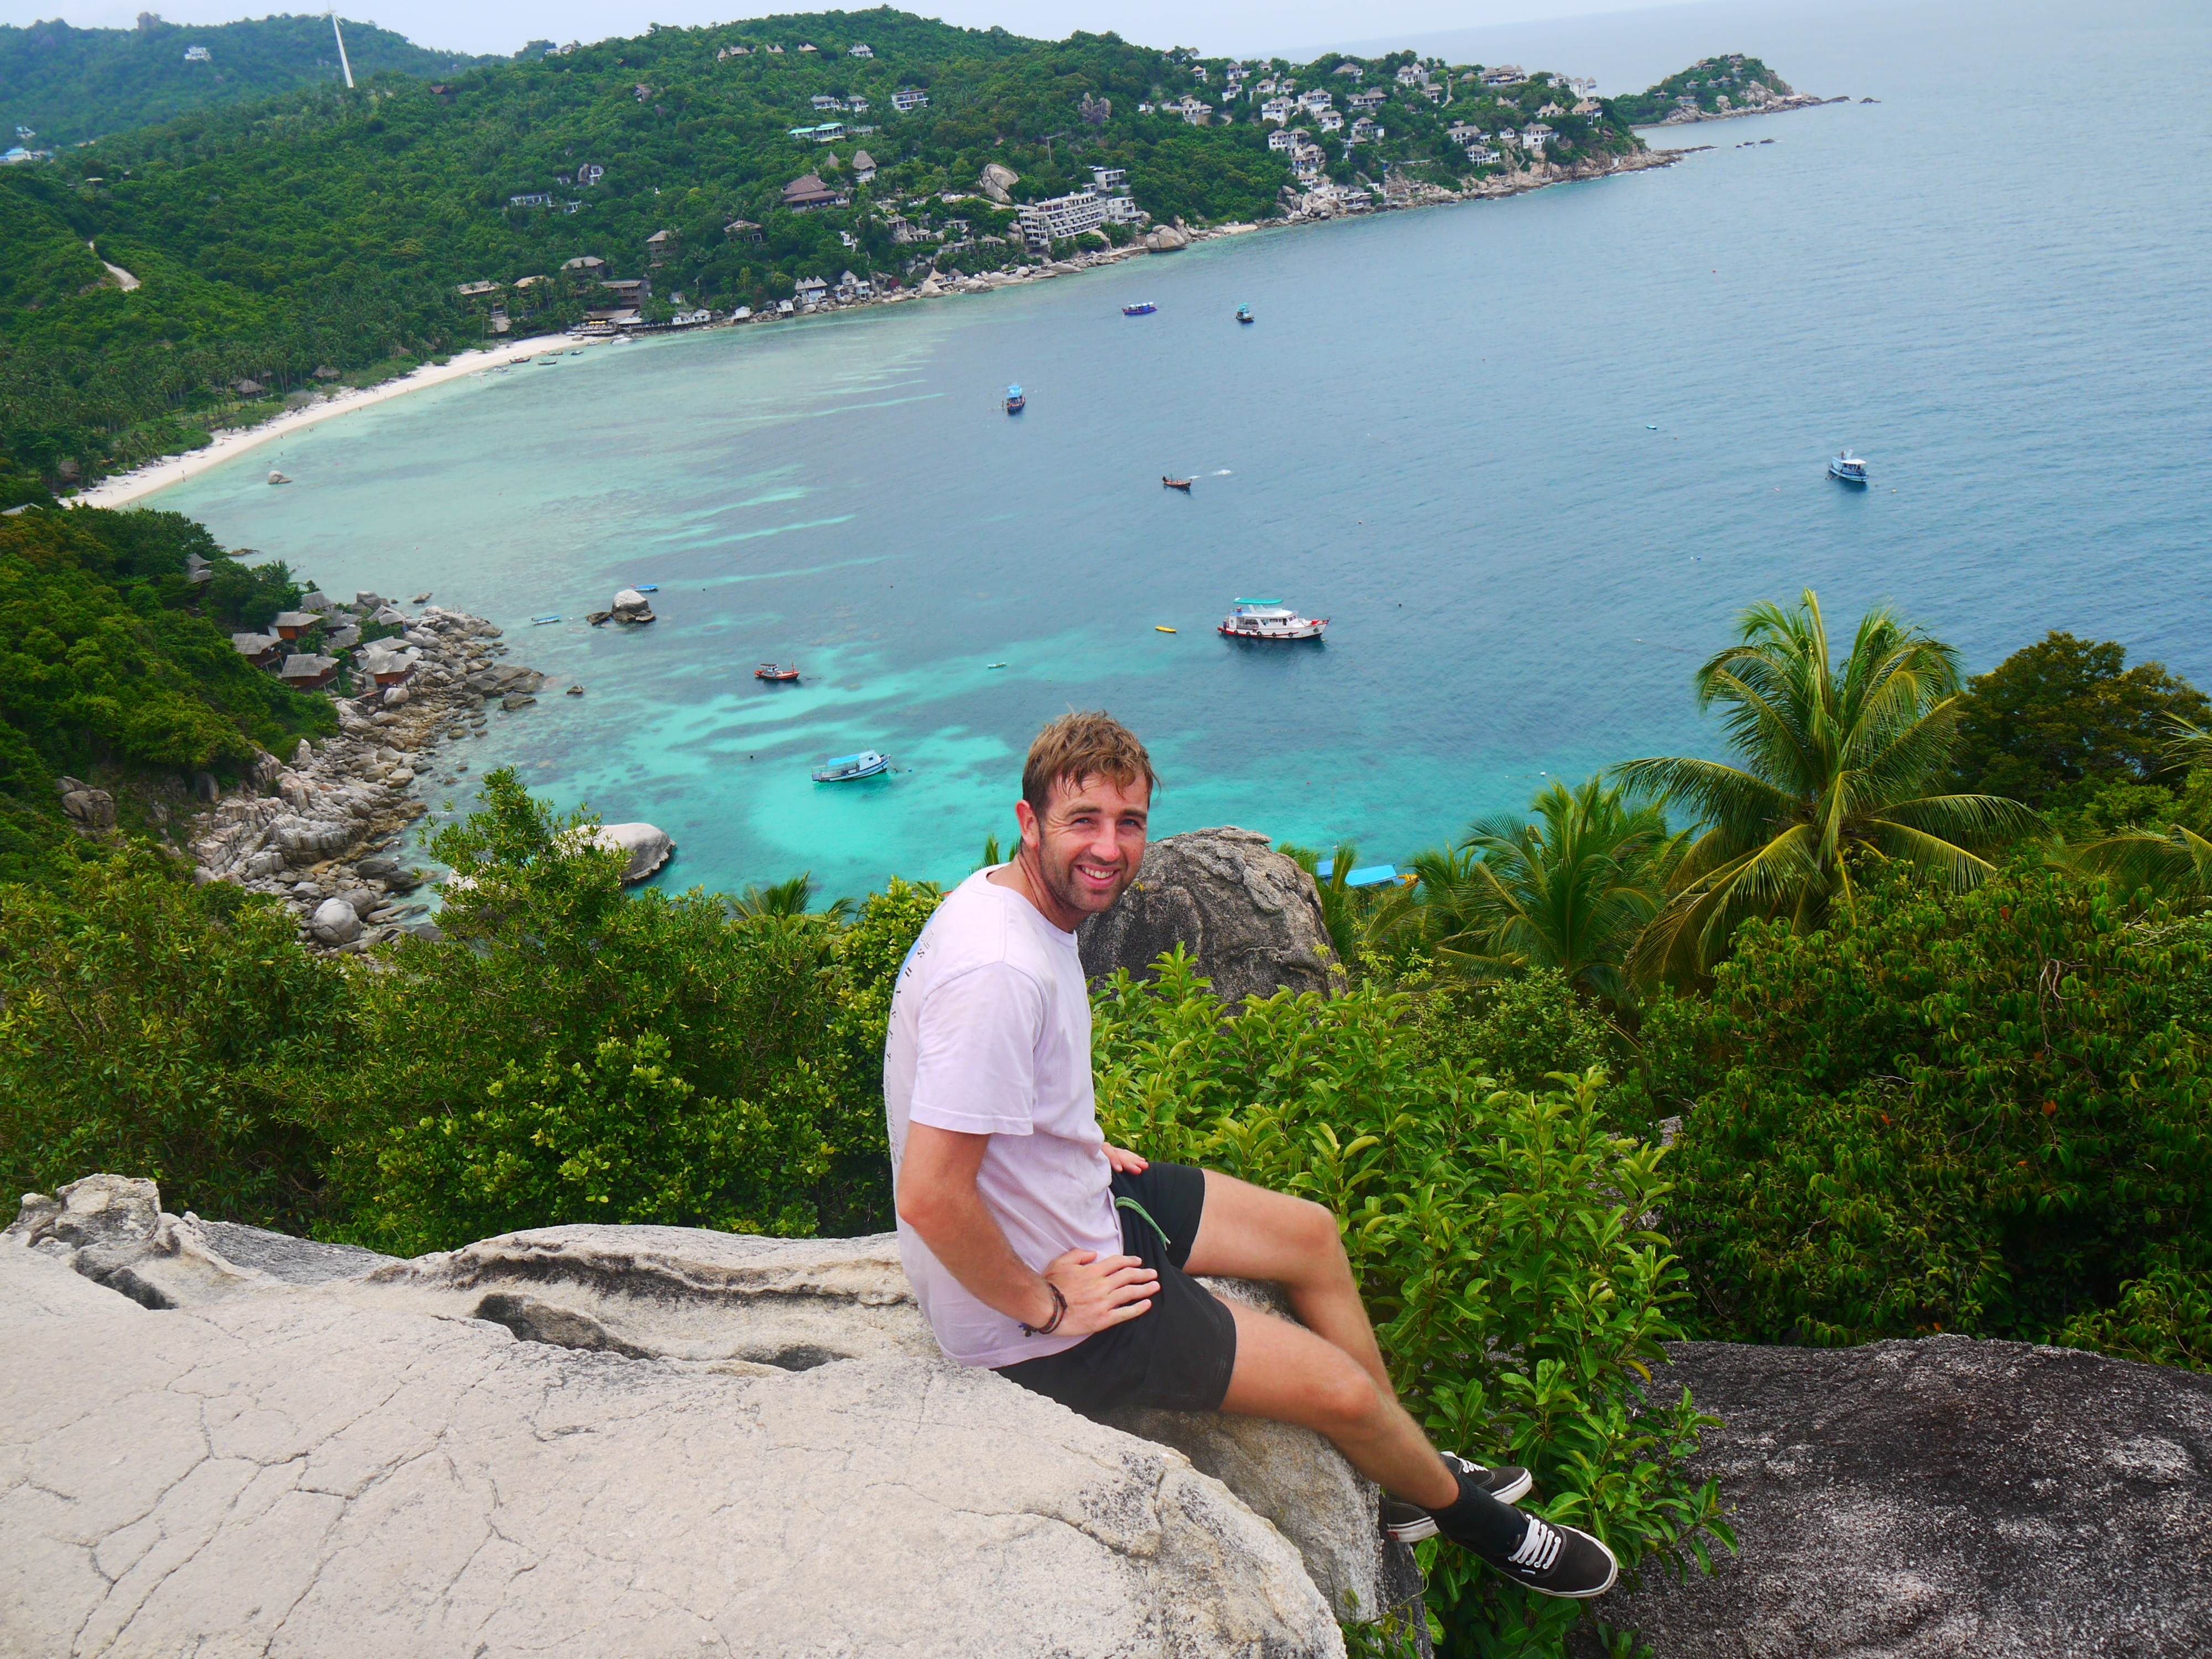 top things to do in Koh Tao hike, koh tao, koh tao thailand, koh tao diving, koh tao hotels, koh tao island, how to get to koh tao, bangkok to koh tao, koh samui to koh tao, koh tao dive, koh tao scuba diving